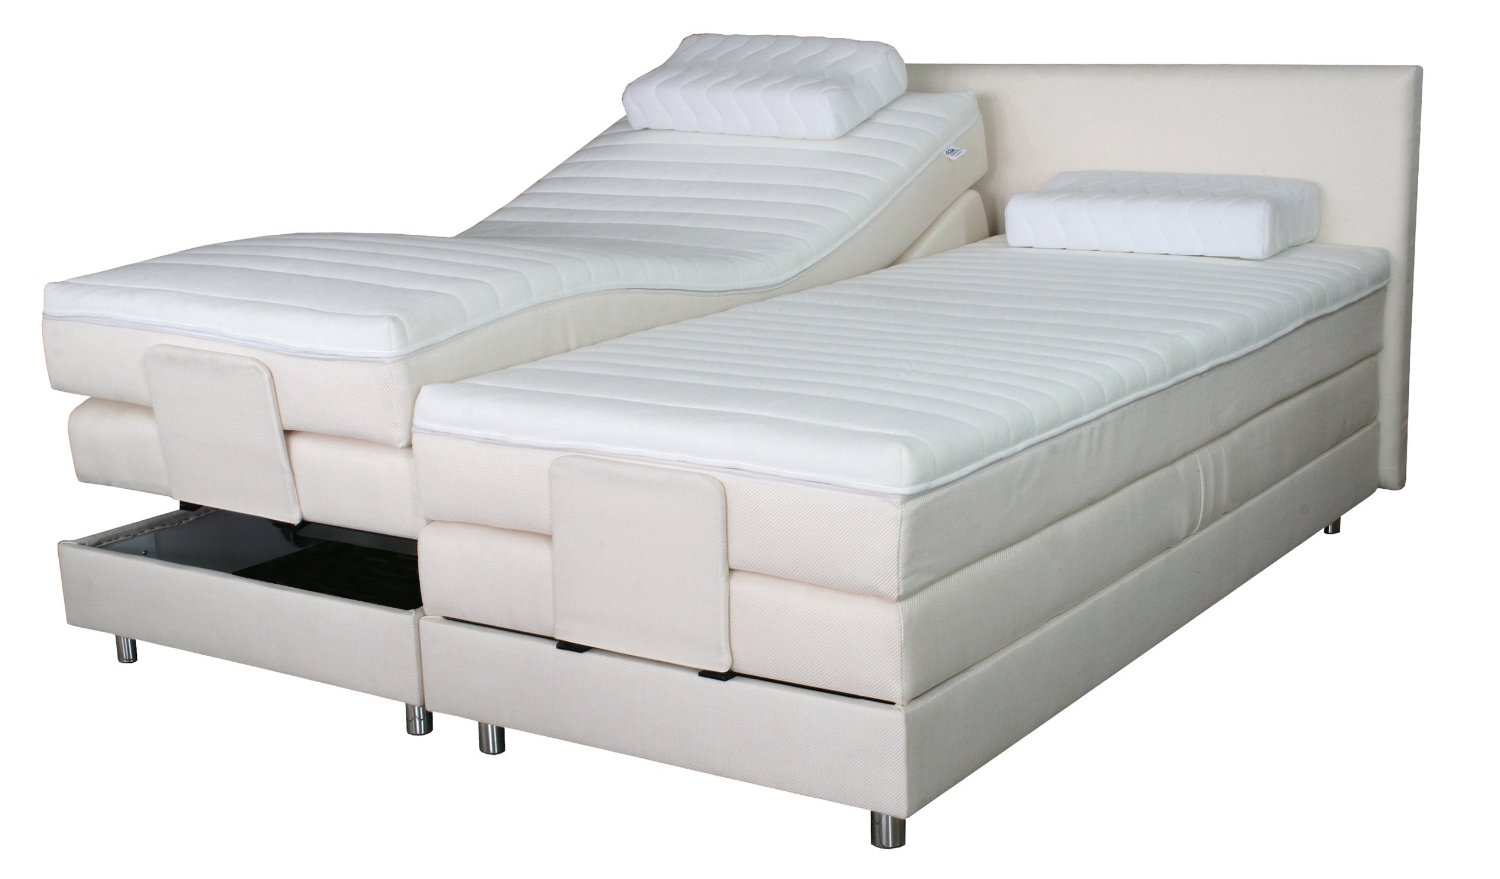 boxspringbett mit motor test boxspringbett mit motor test boxspringbett mit motor test. Black Bedroom Furniture Sets. Home Design Ideas